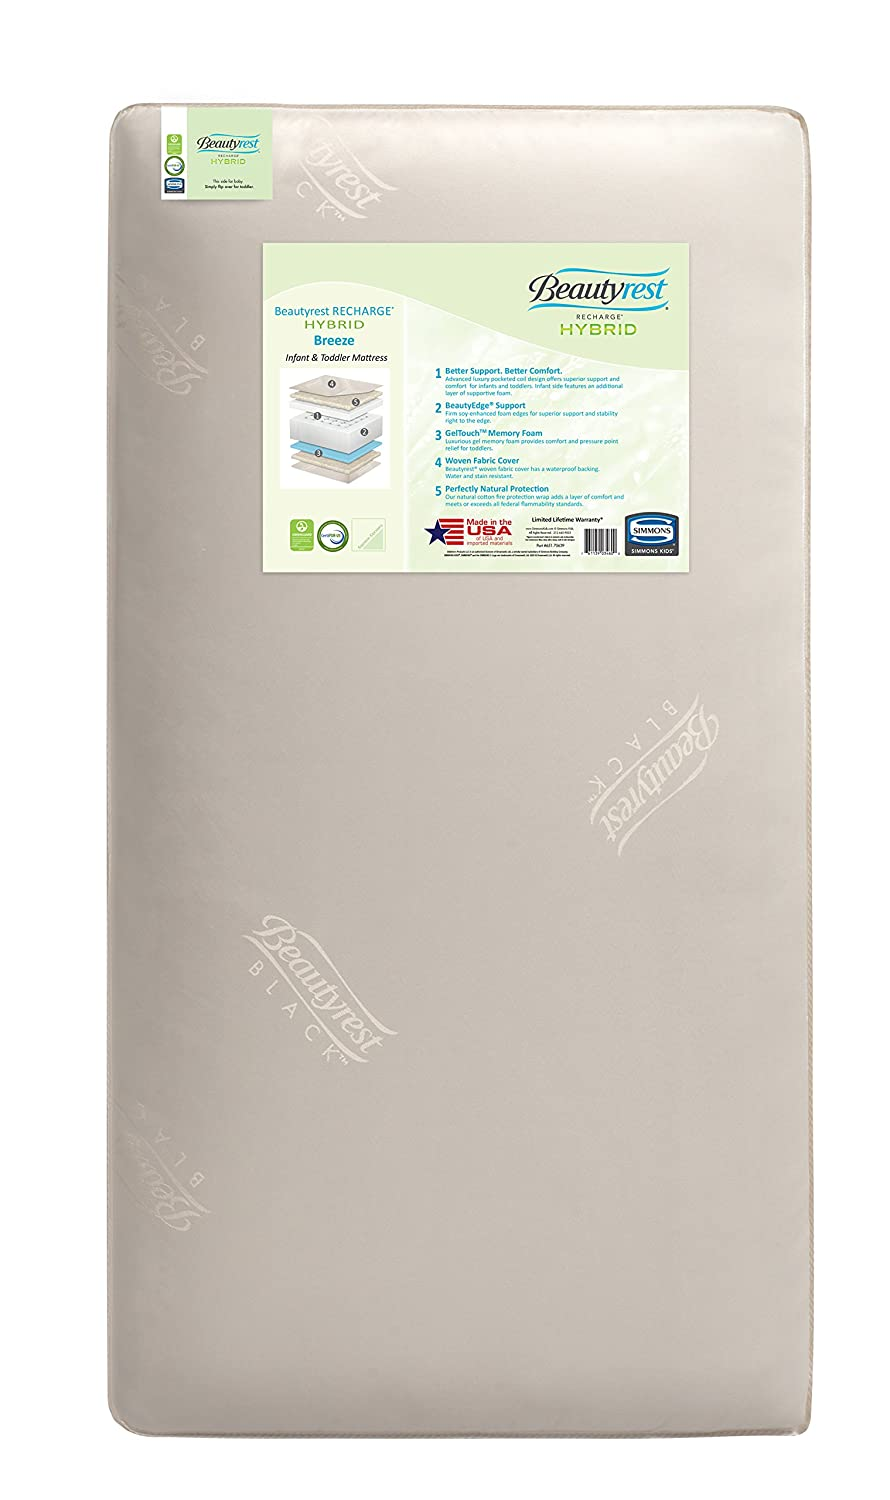 Beautyrest Recharge Hybrid Breeze Innerspring/Foam Crib and Toddler Mattress | Waterproof | GREENGUARD Gold Certified (Natural/Non-Toxic) Simmons M59211-5029